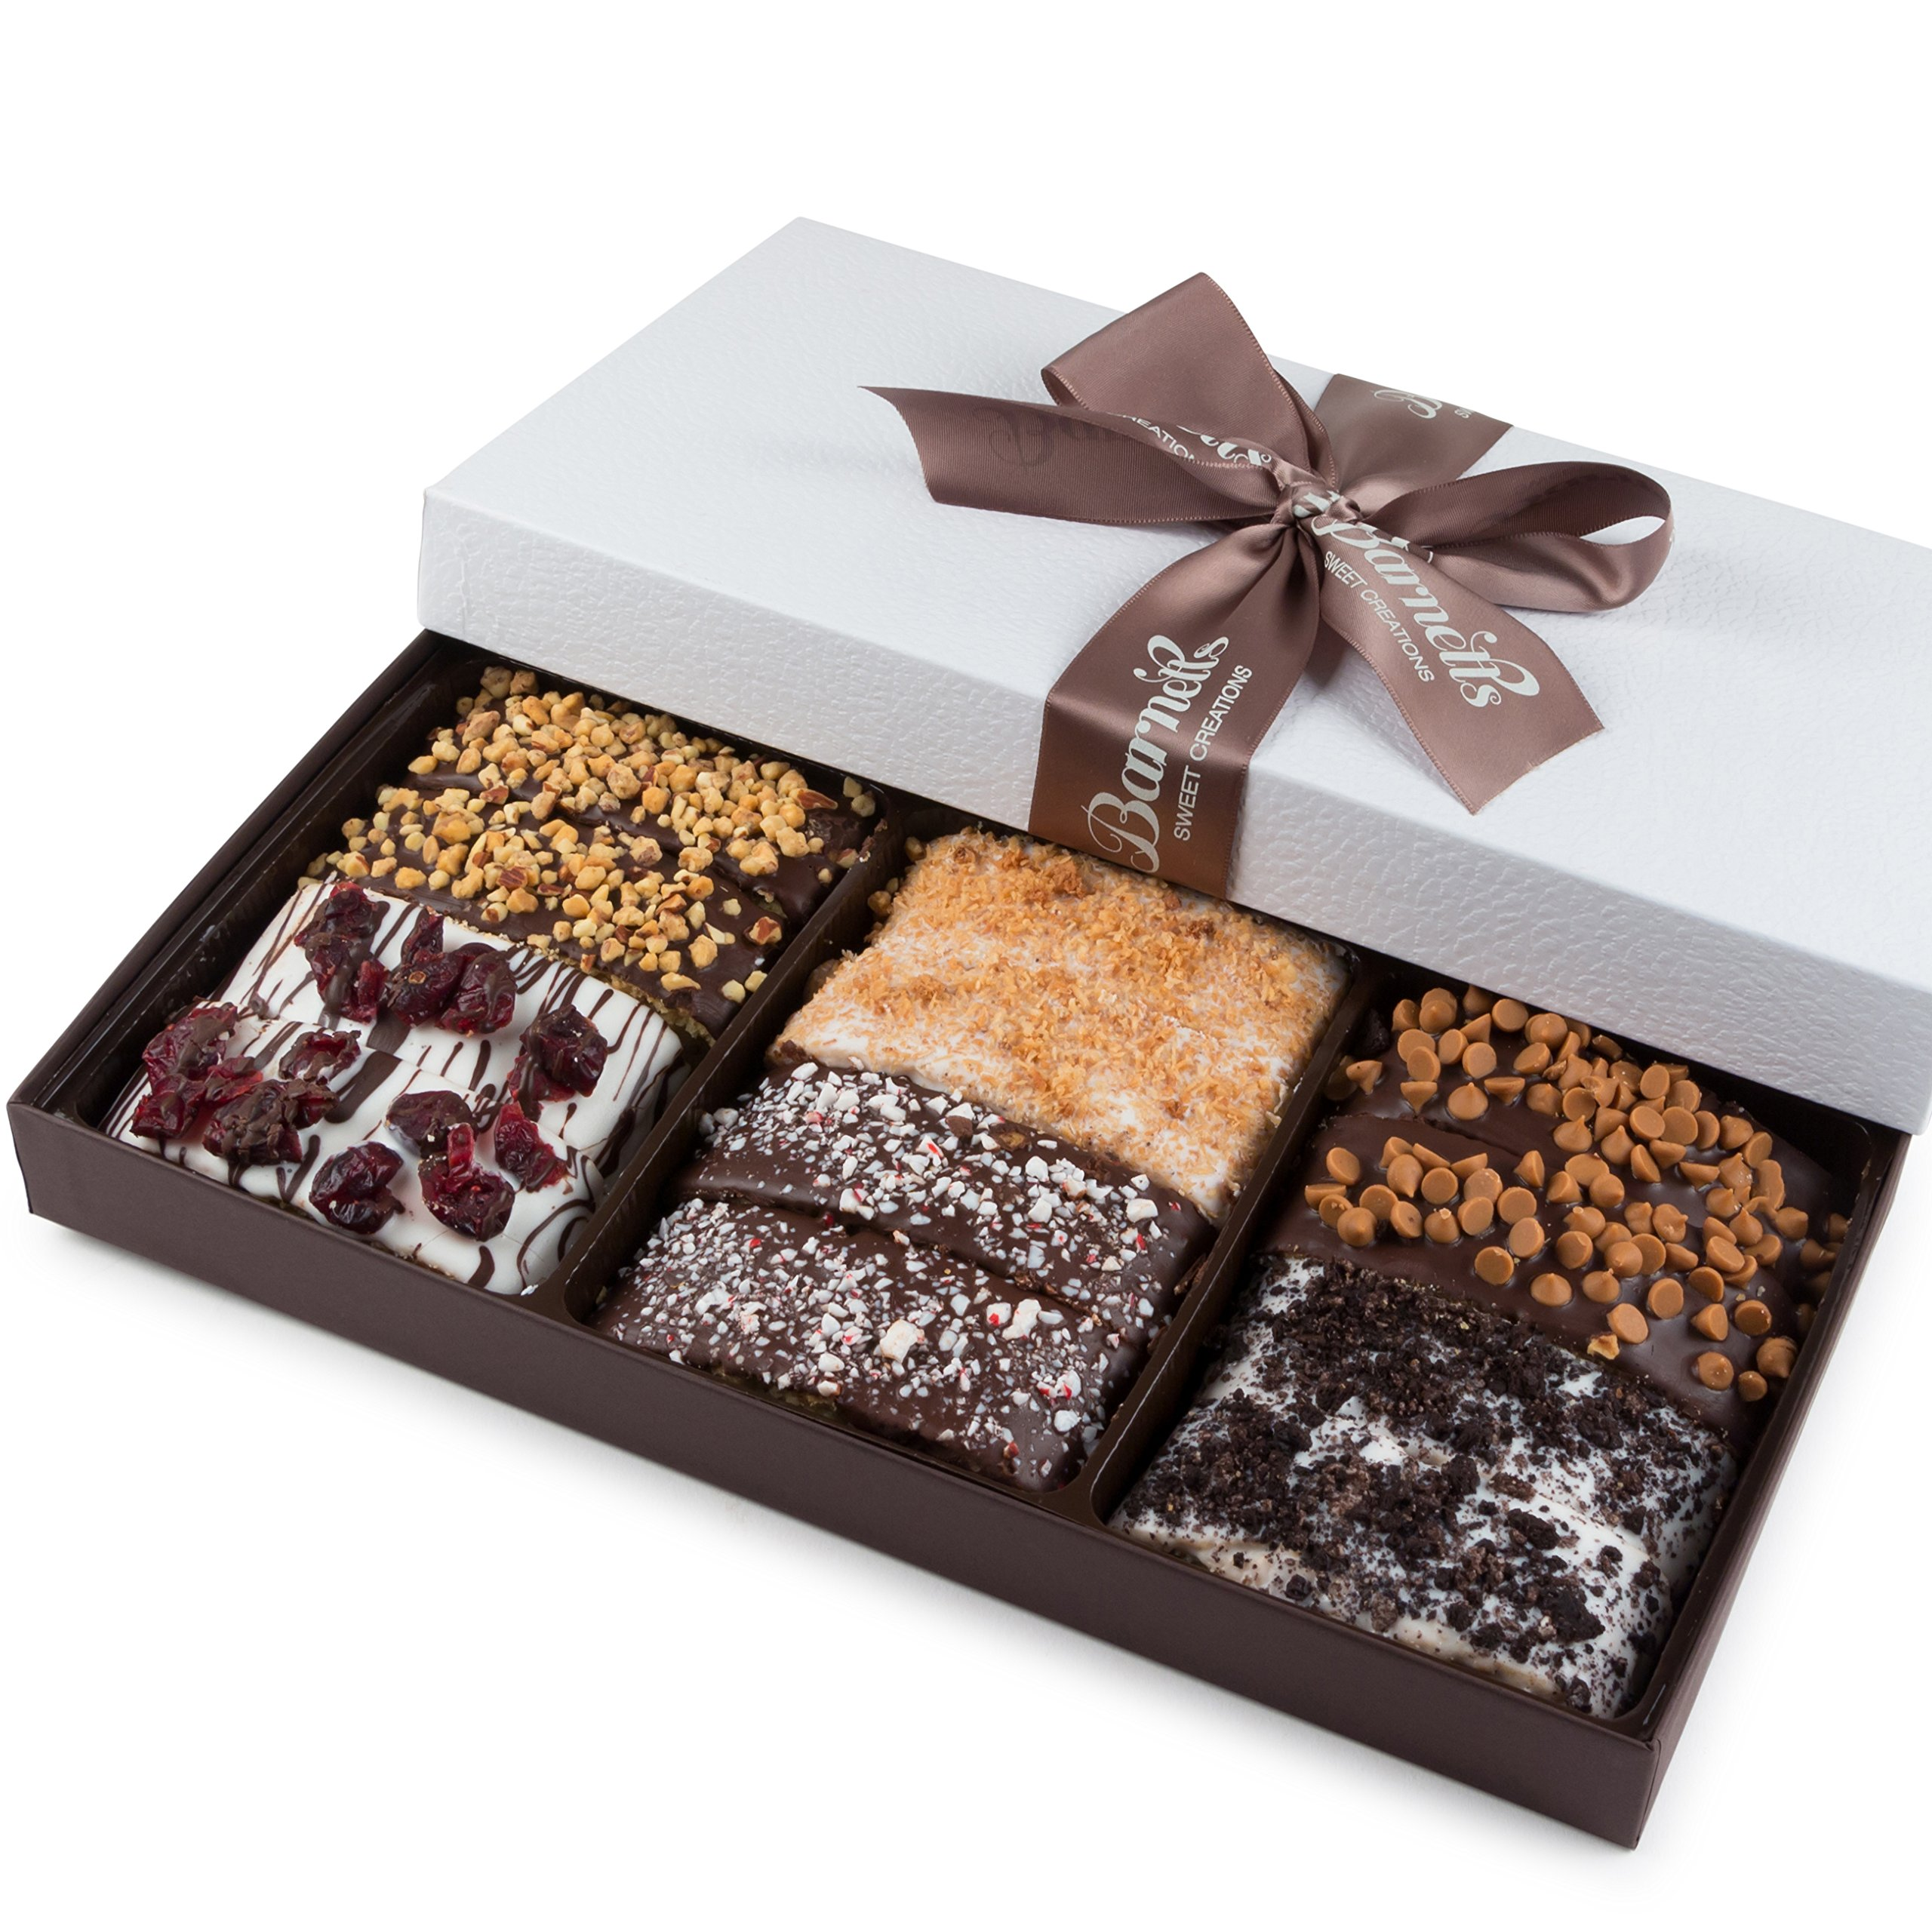 Get Quotations Barnetts Gourmet Chocolate Valentines Biscotti Gift Basket For Him Her Man Woman Unique Corporate Well